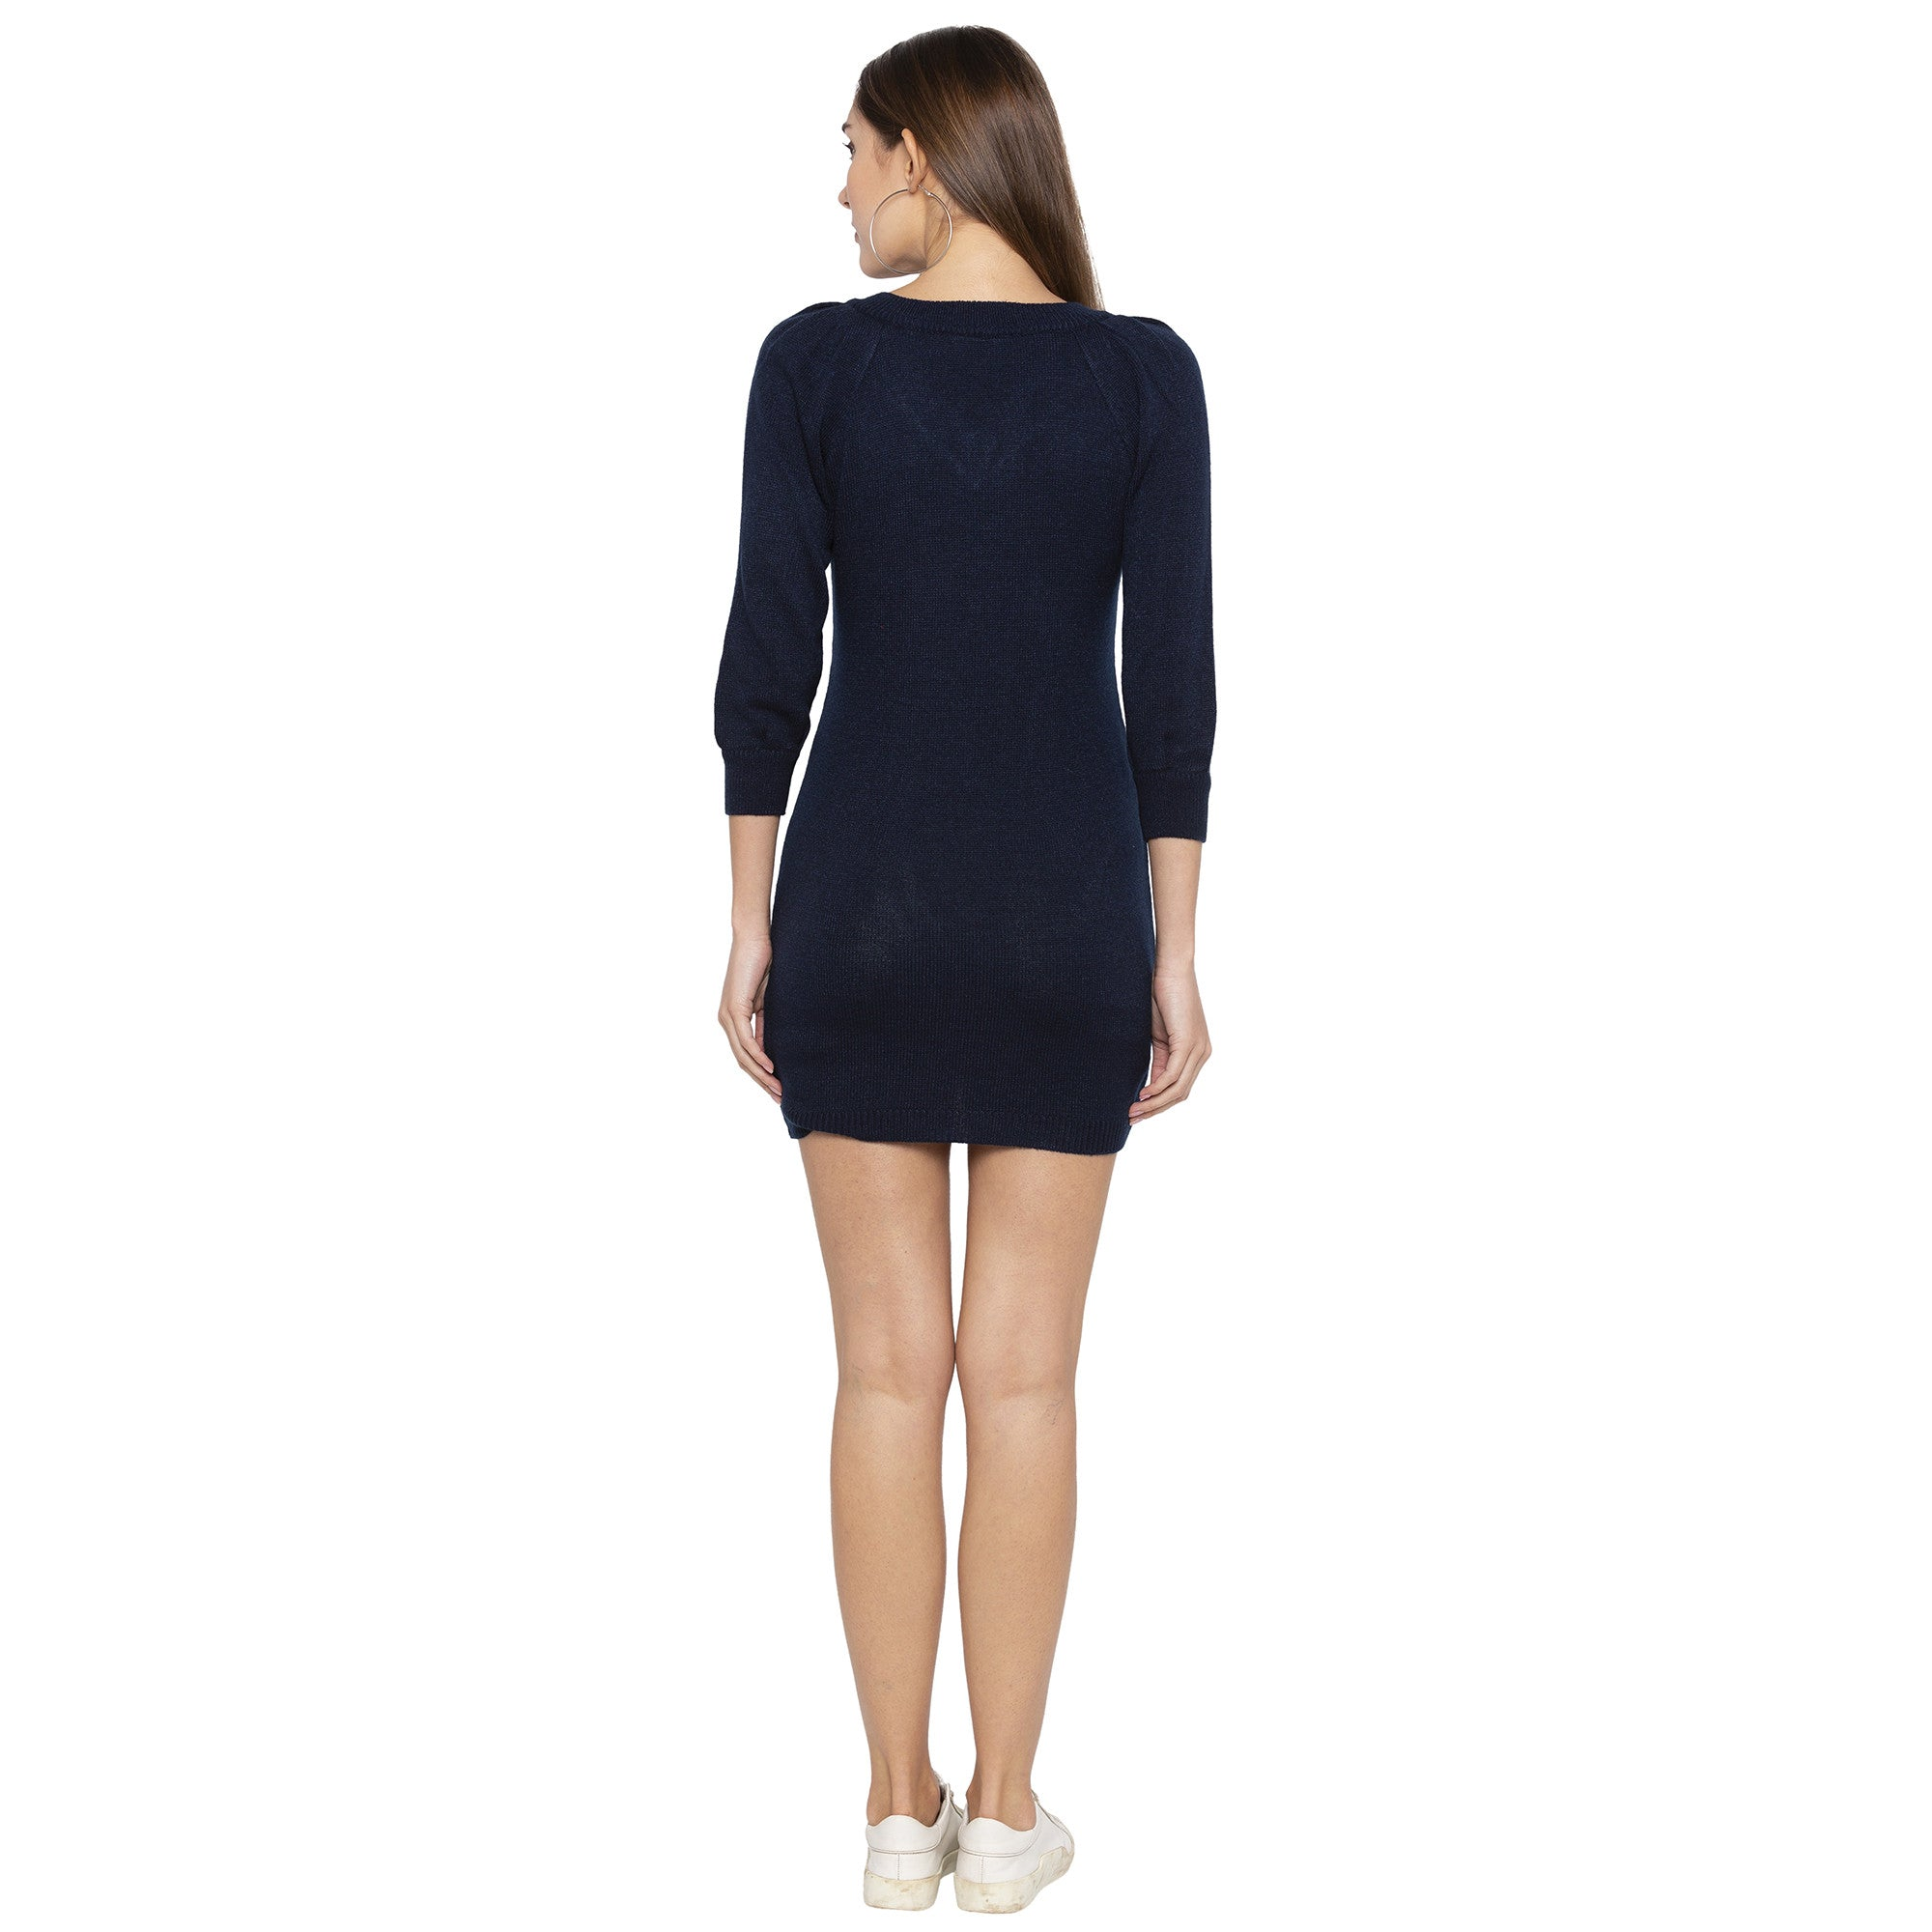 Casual Navy Blue Color Solid Bodycon Dress-3